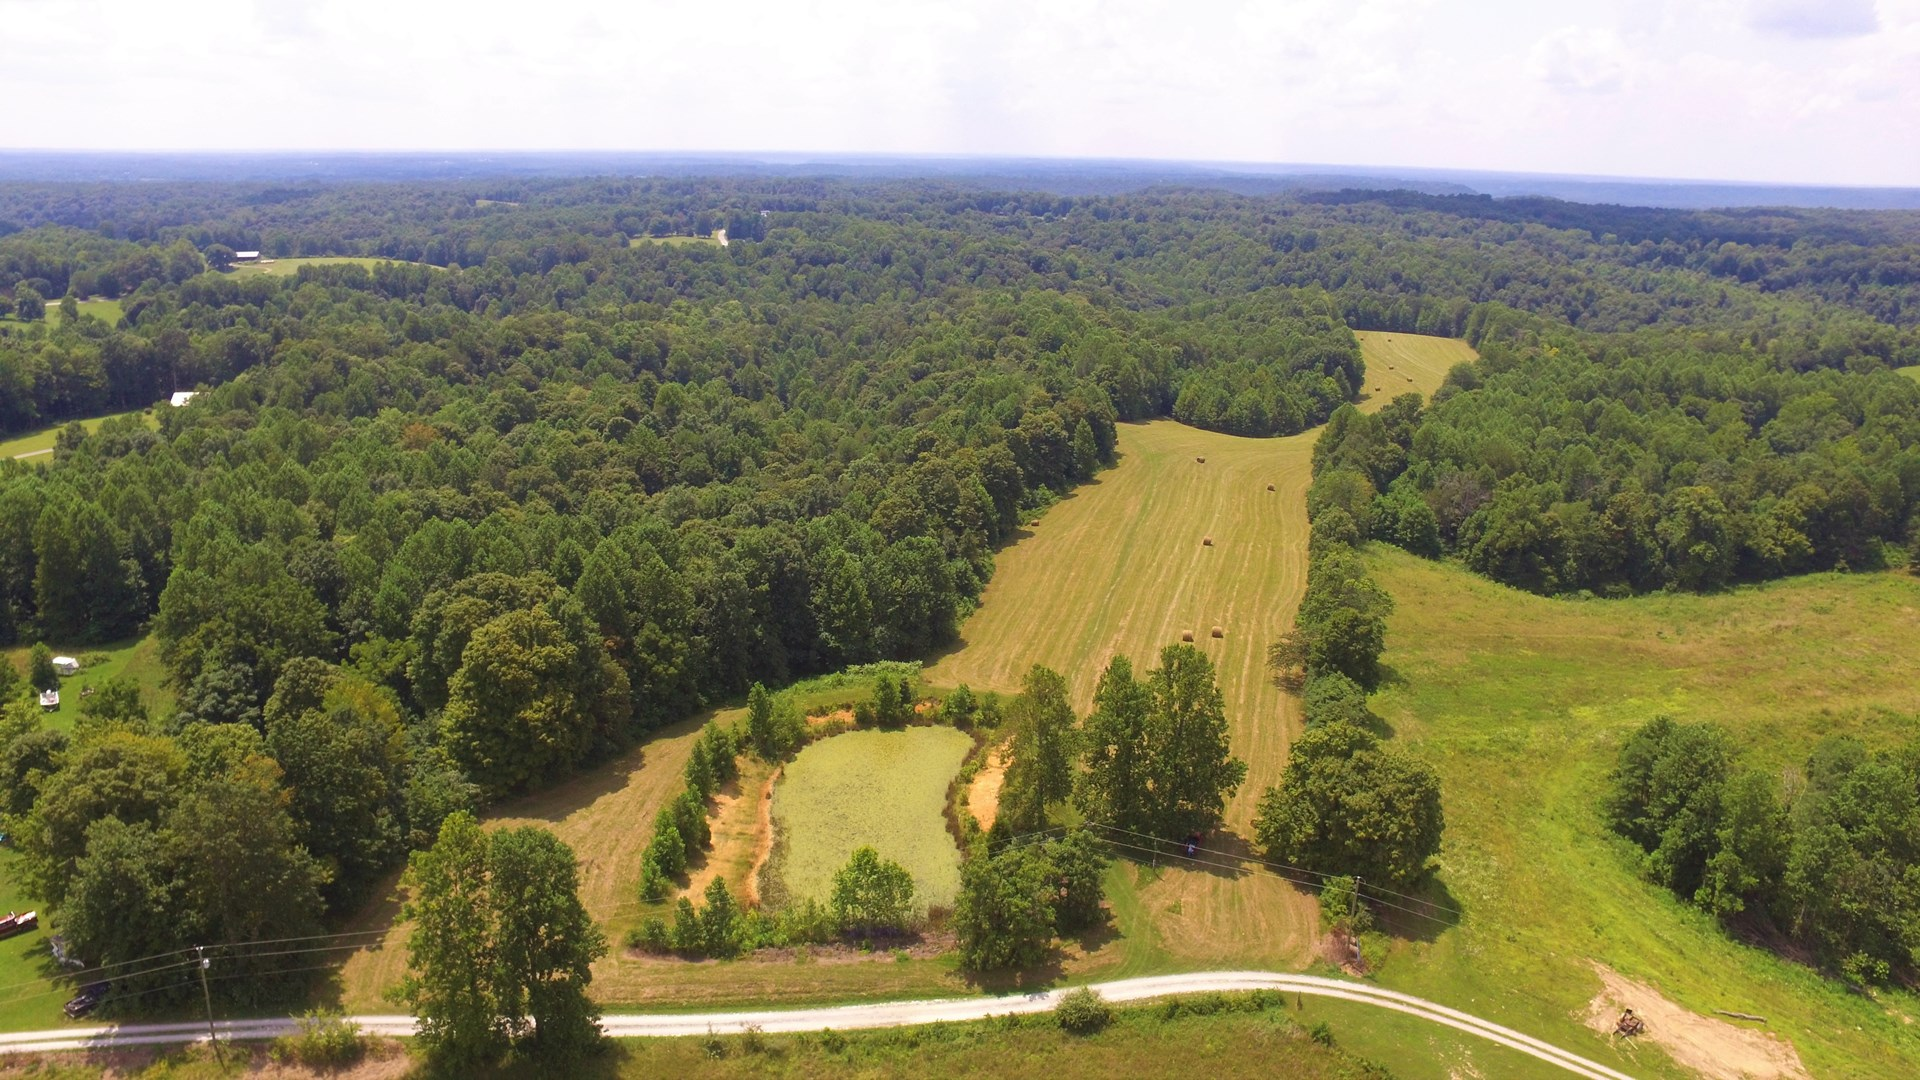 42.5 ACRES-BUILDING SITES-POND-PASTURE-WOODLAND-LIBERTY, KY.